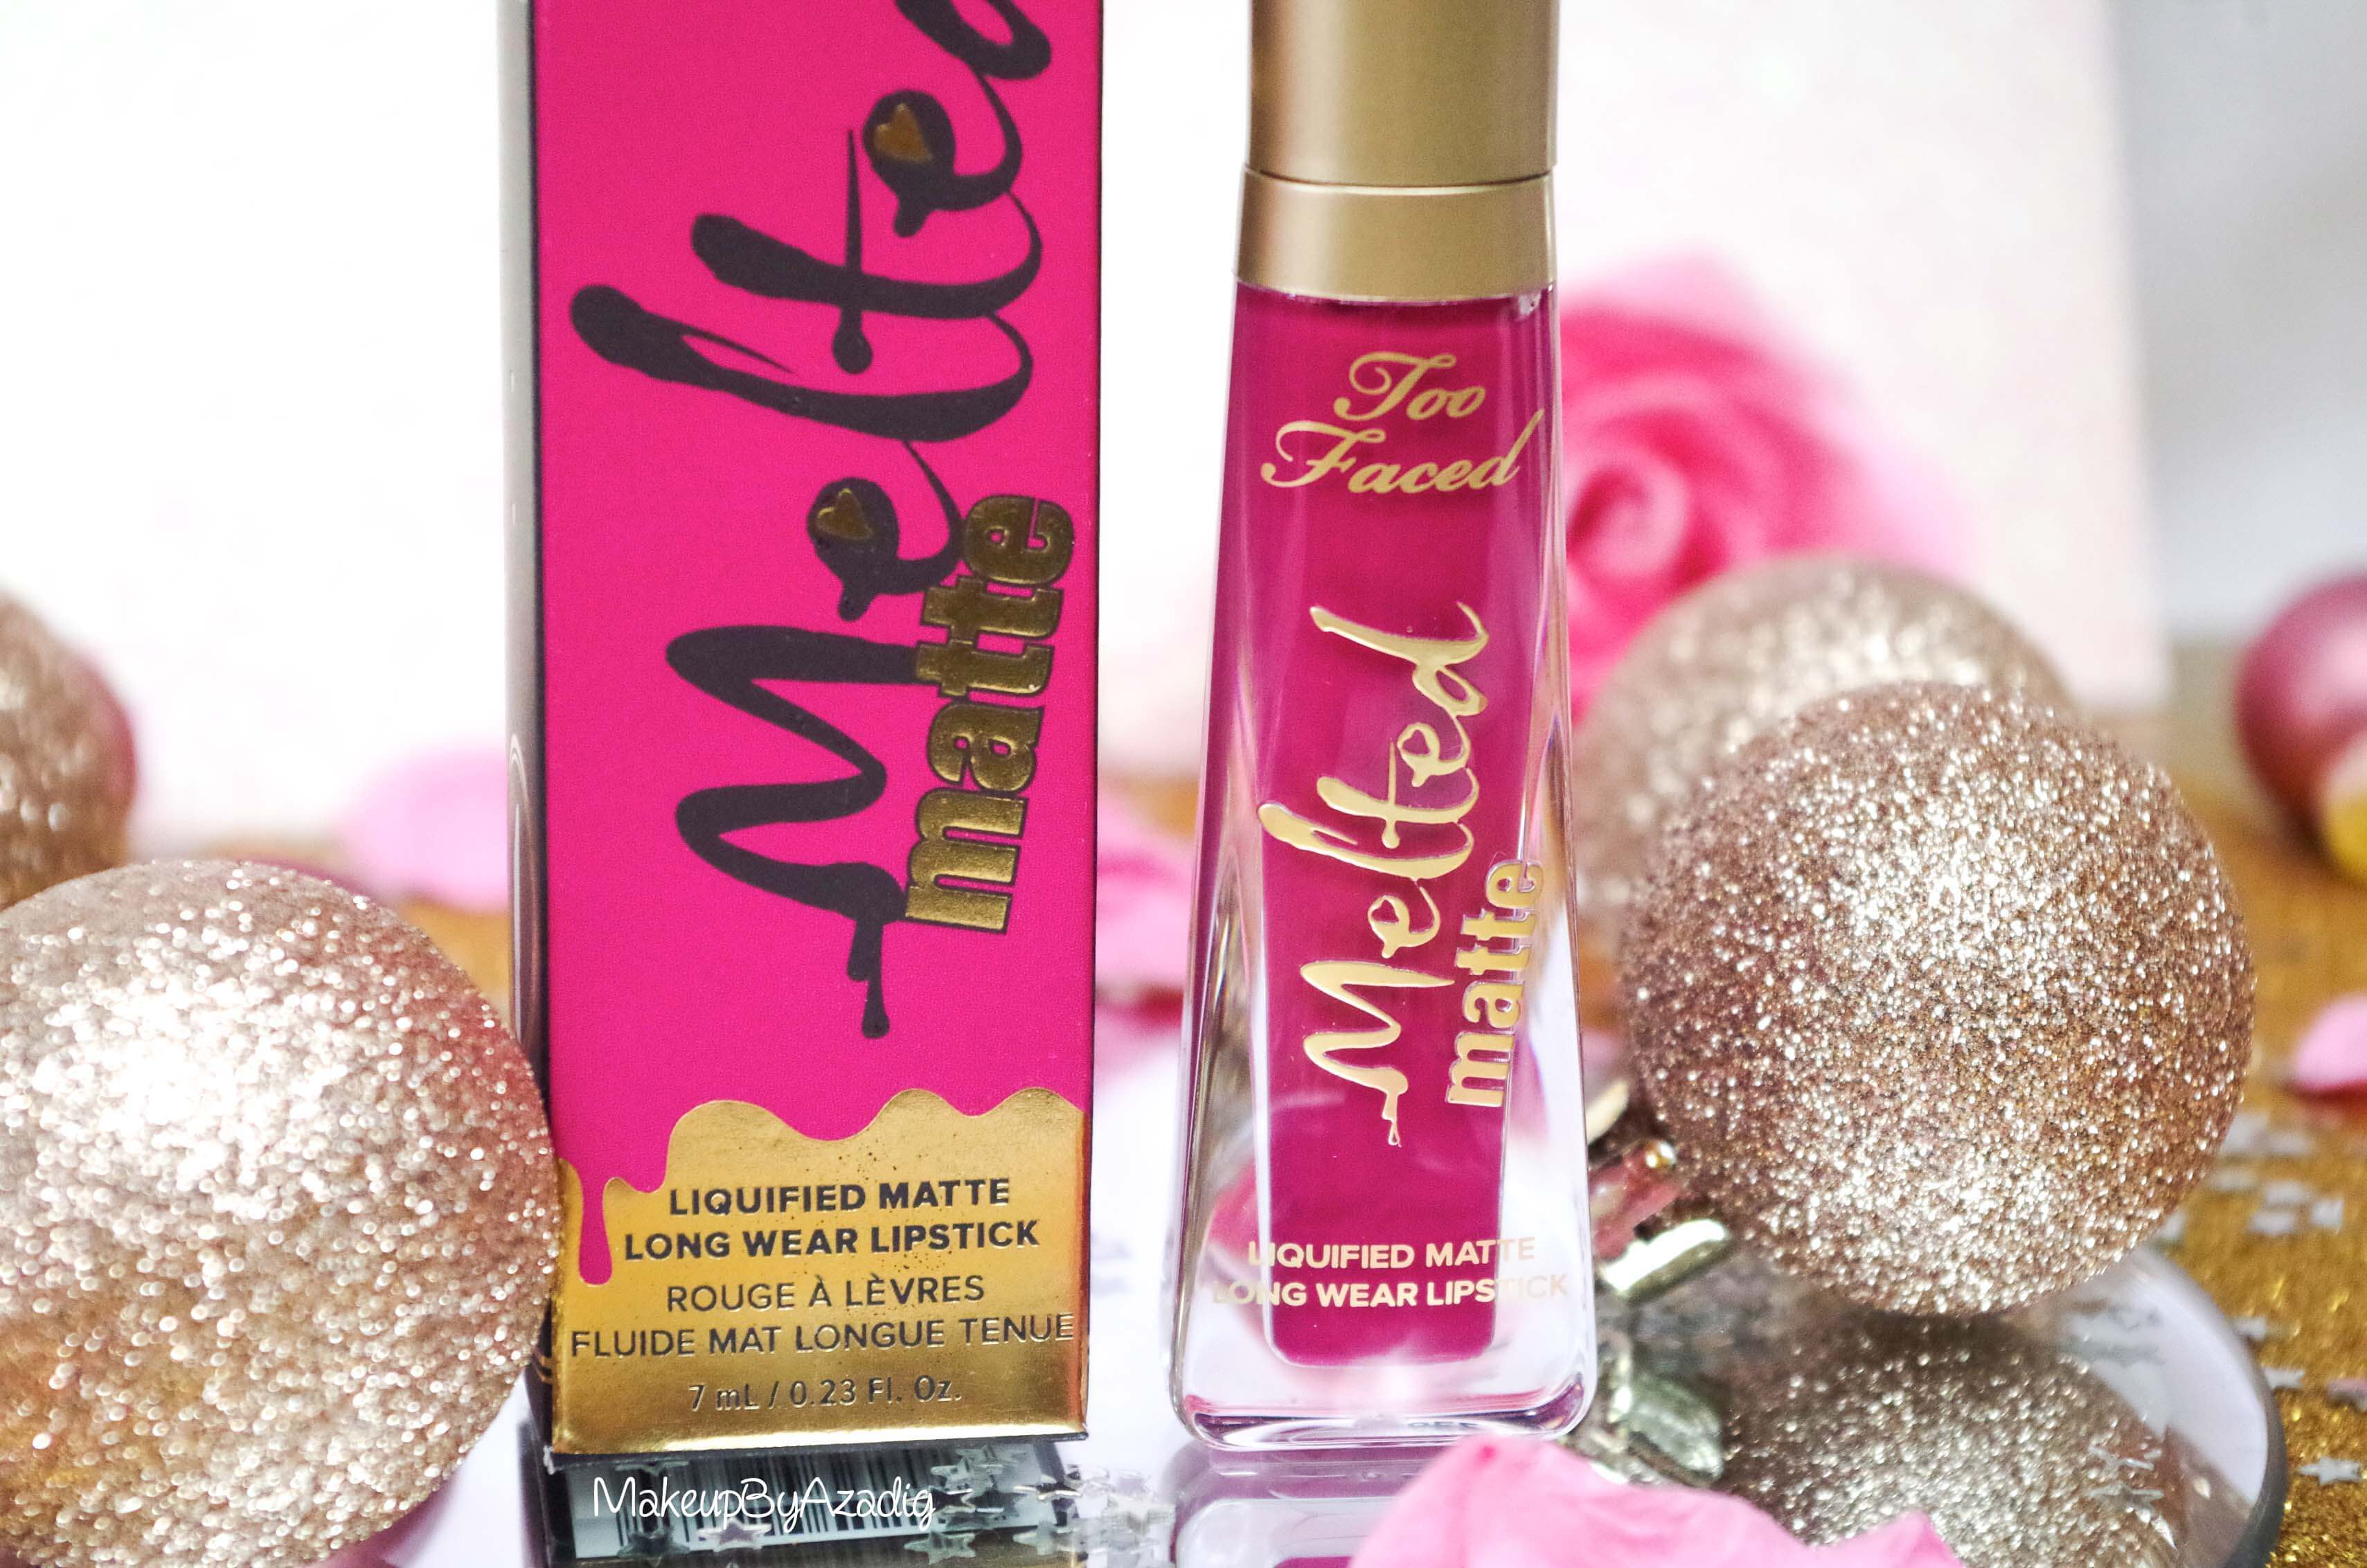 makeupbyazadig-melted-matte-queenb-bendandsnap-influencer-too-faced-rouge-levres-revue-avis-prix-sephora-paris-blog-liquide-collection